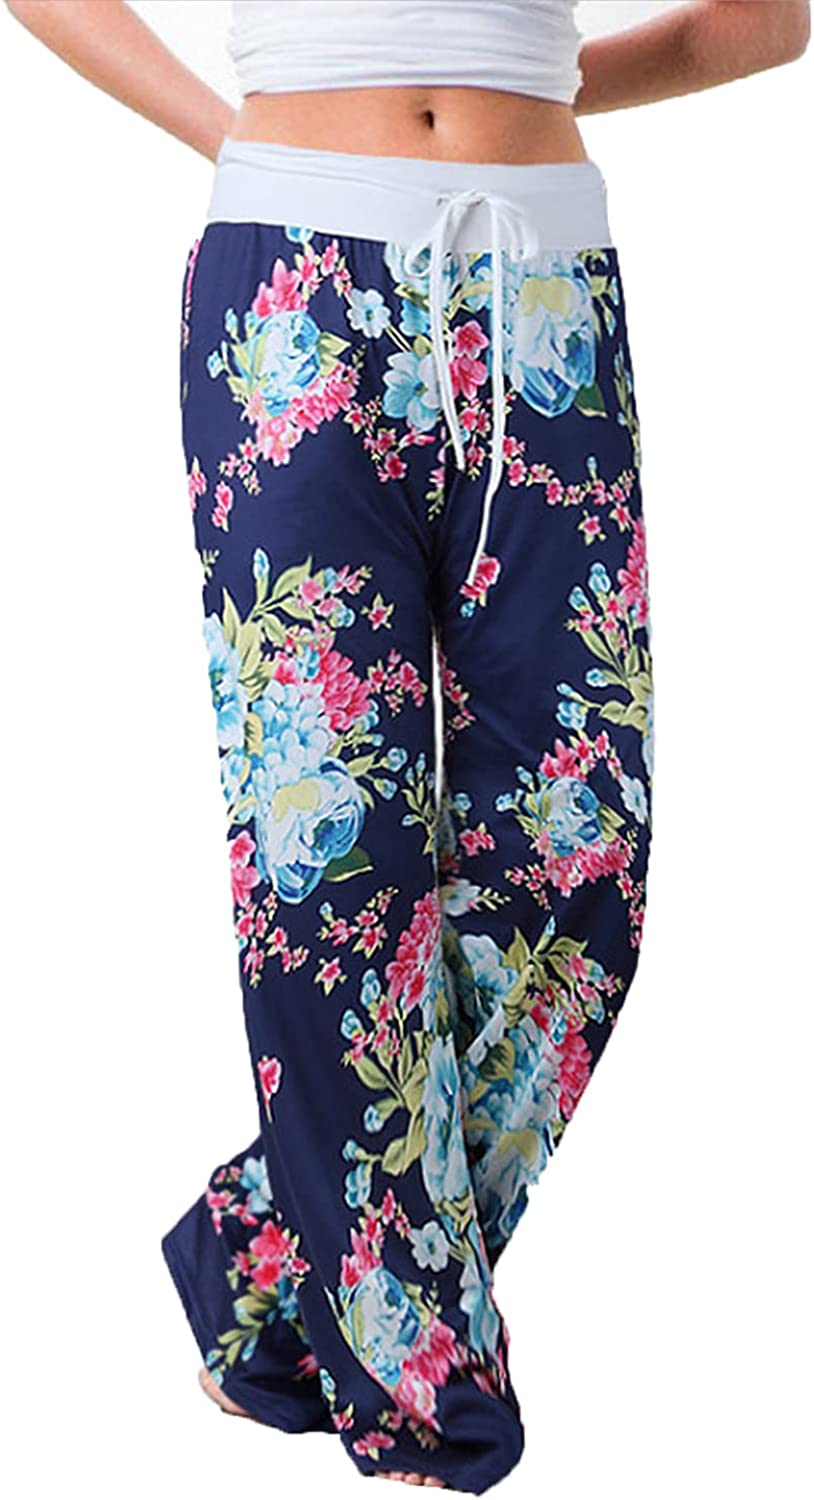 Women's Printed Wide-Leg Pants Comfy Stretch Floral Print Drawstring Lounge Trousers Casual Stretchy Casualpants (Large,Blue 1)